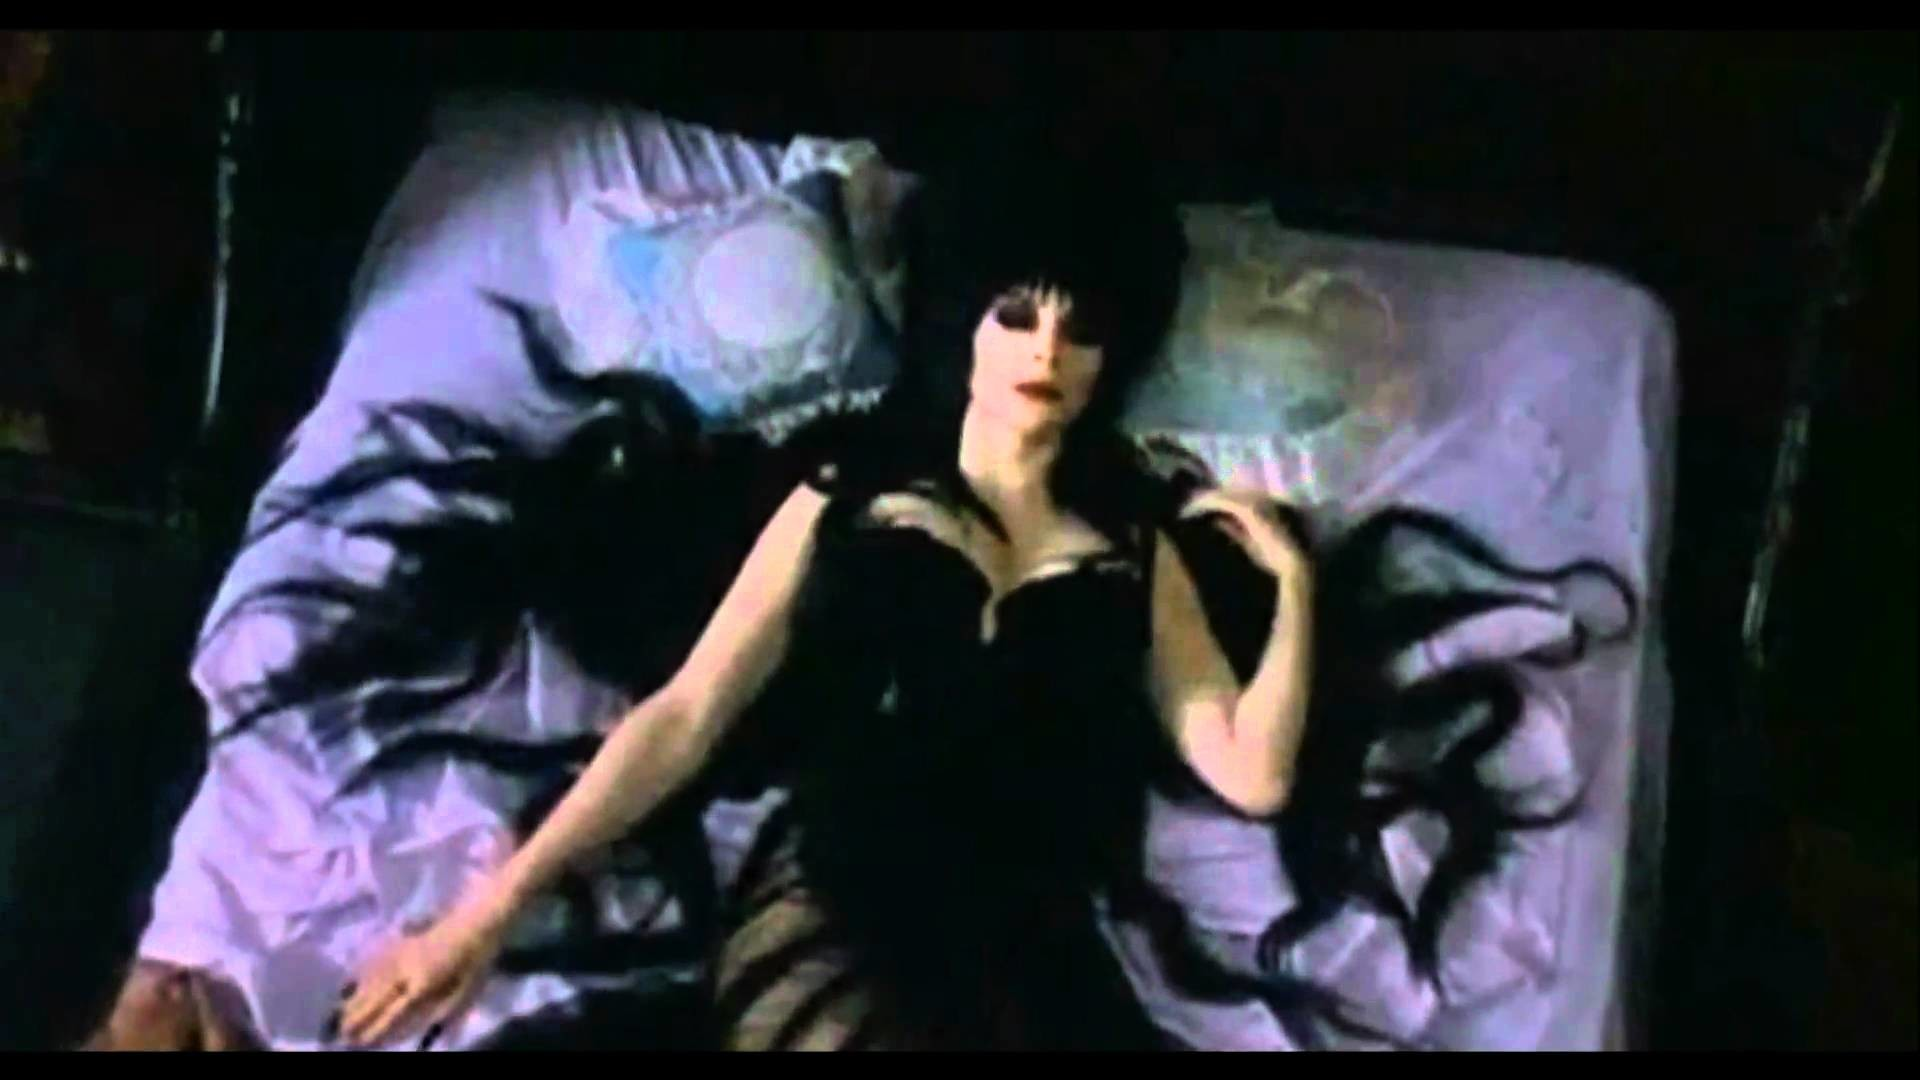 1920x1080 Elvira Mistress of the Dark - I Put A Spell On You